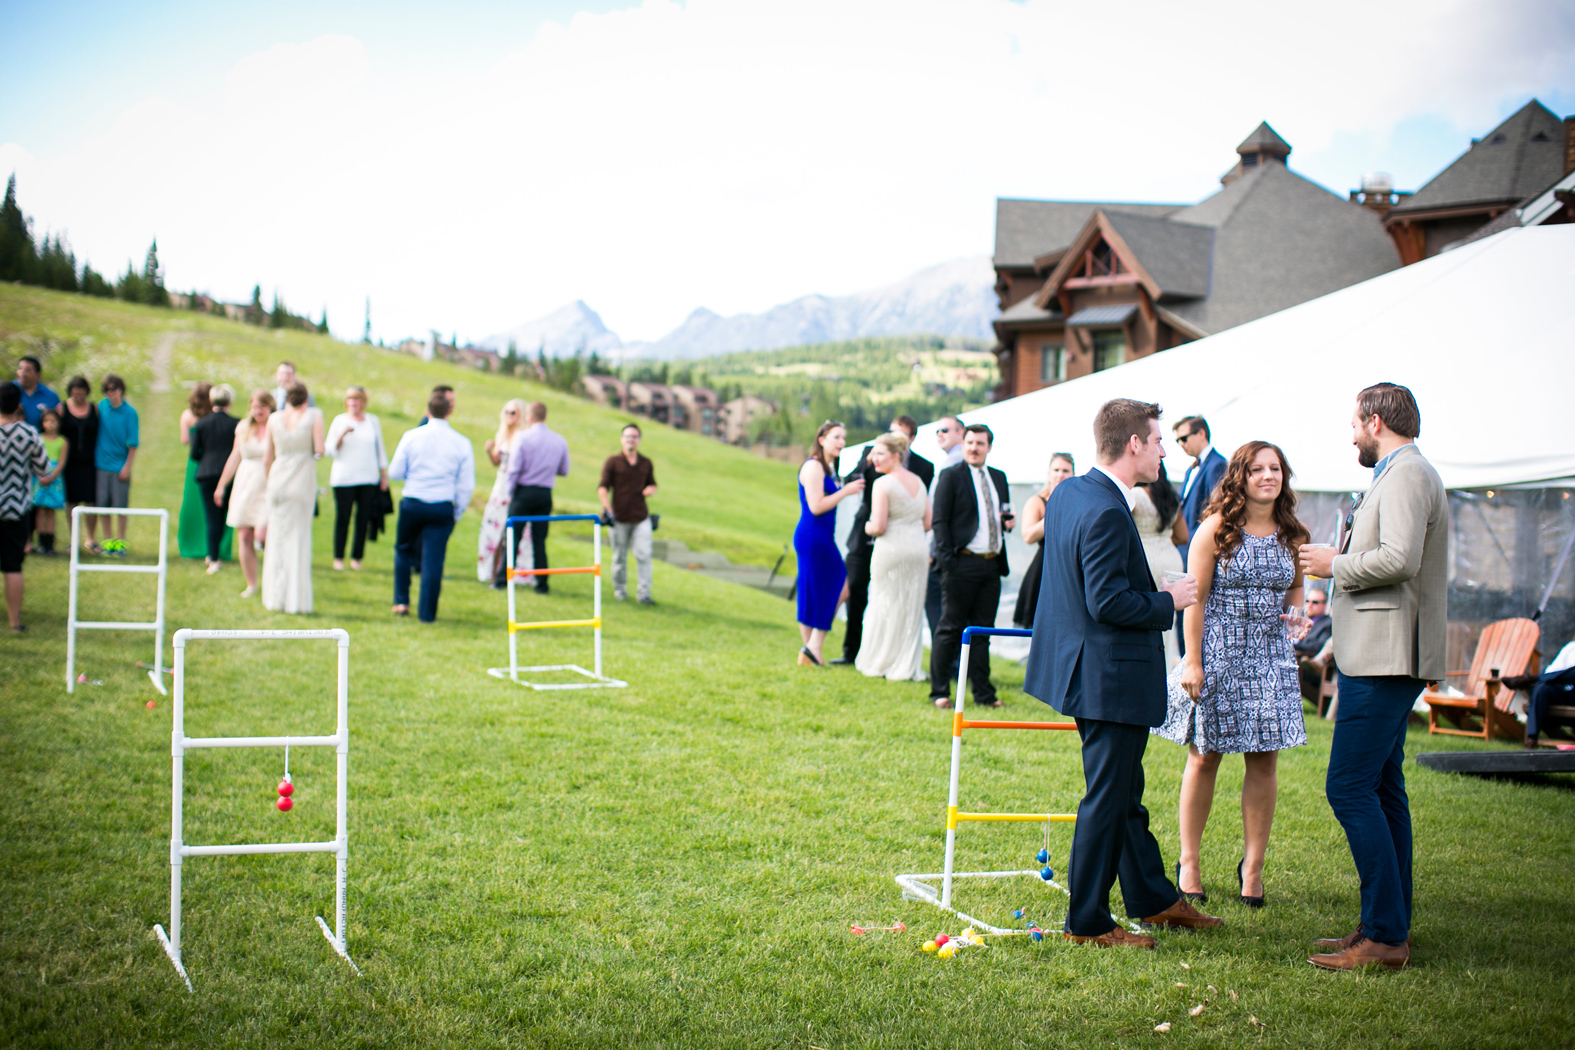 Lawn Games / Montana Wedding / Eye in the Sky Photography / Big Sky Resort / Flowers: Katalin Green